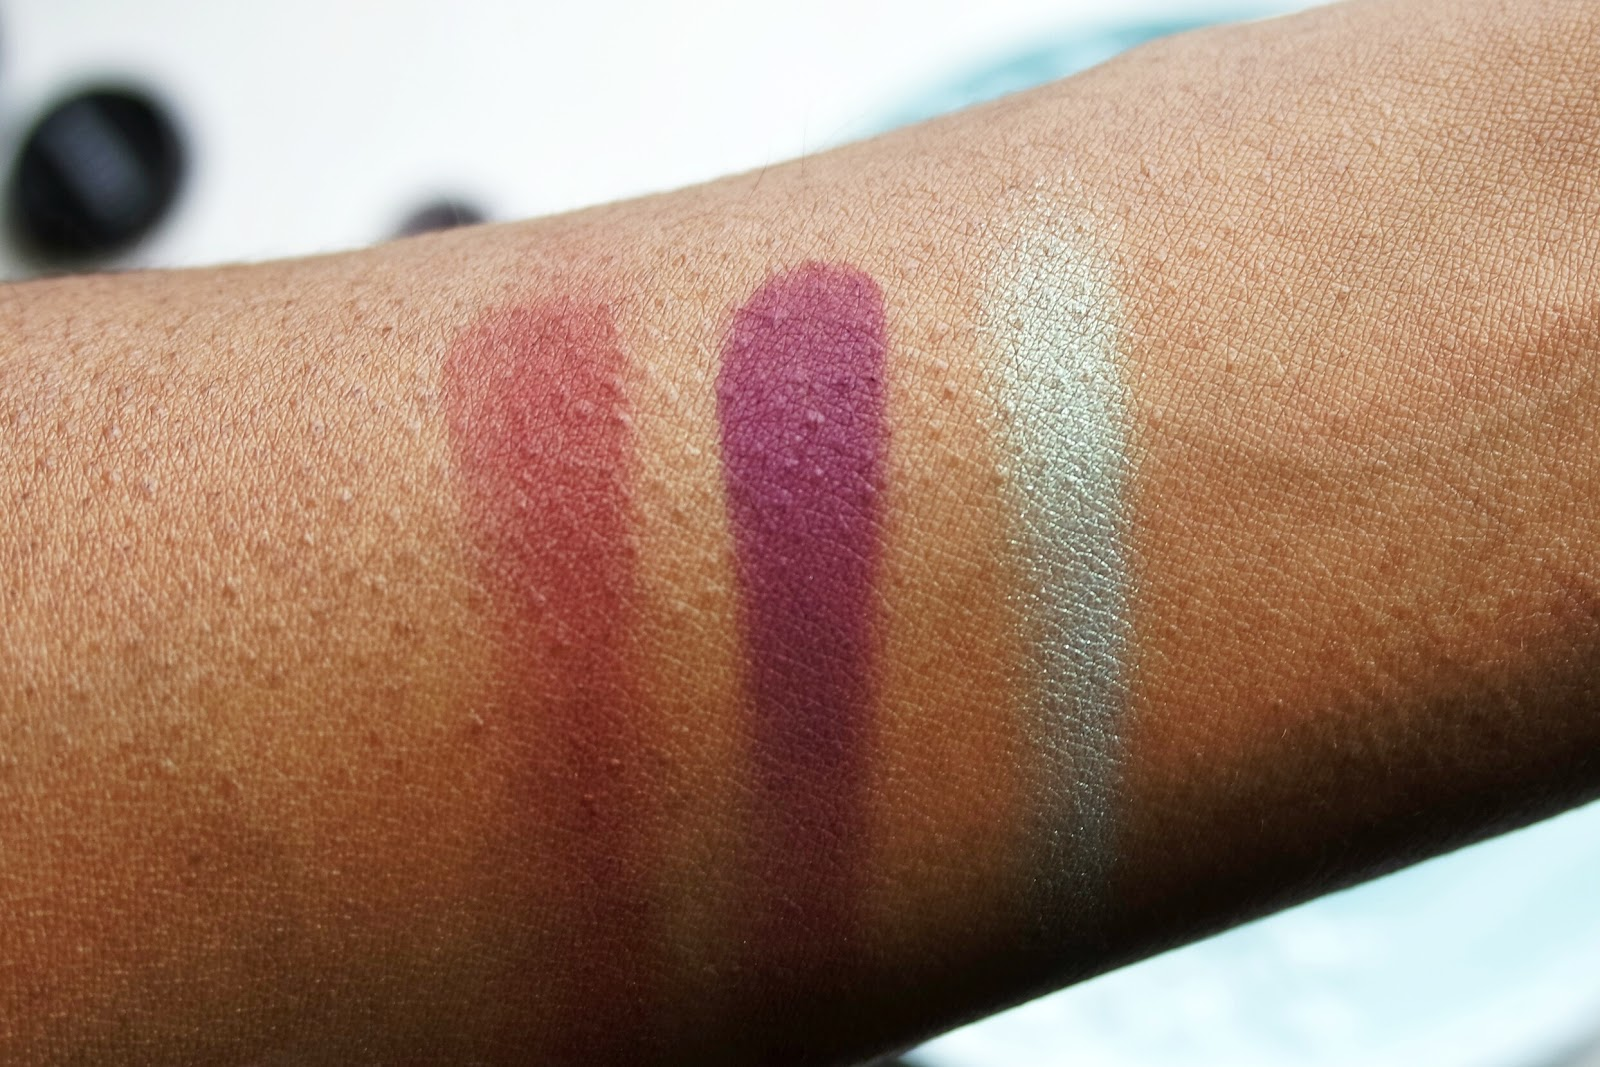 Swatches of Inglot eyeshadows